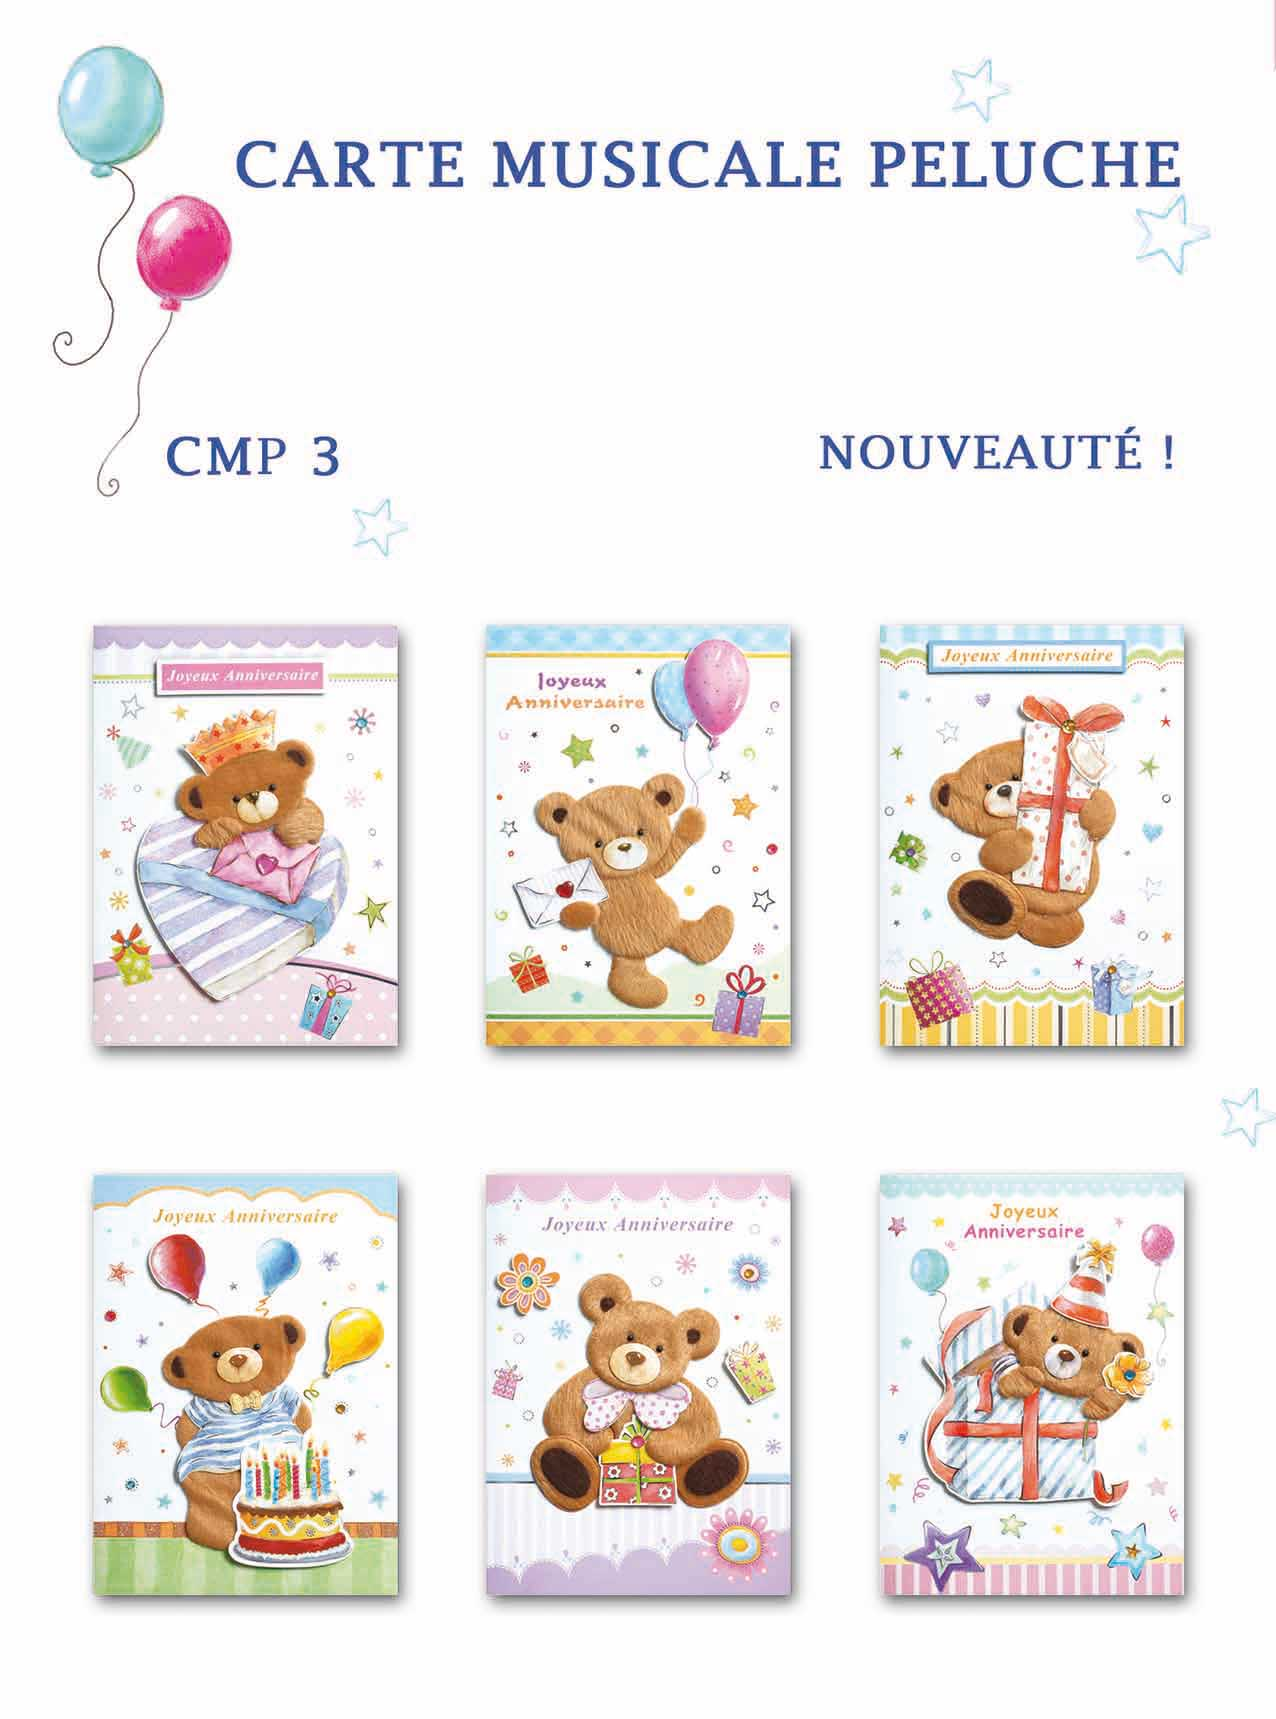 Cartes Musicales Peluche